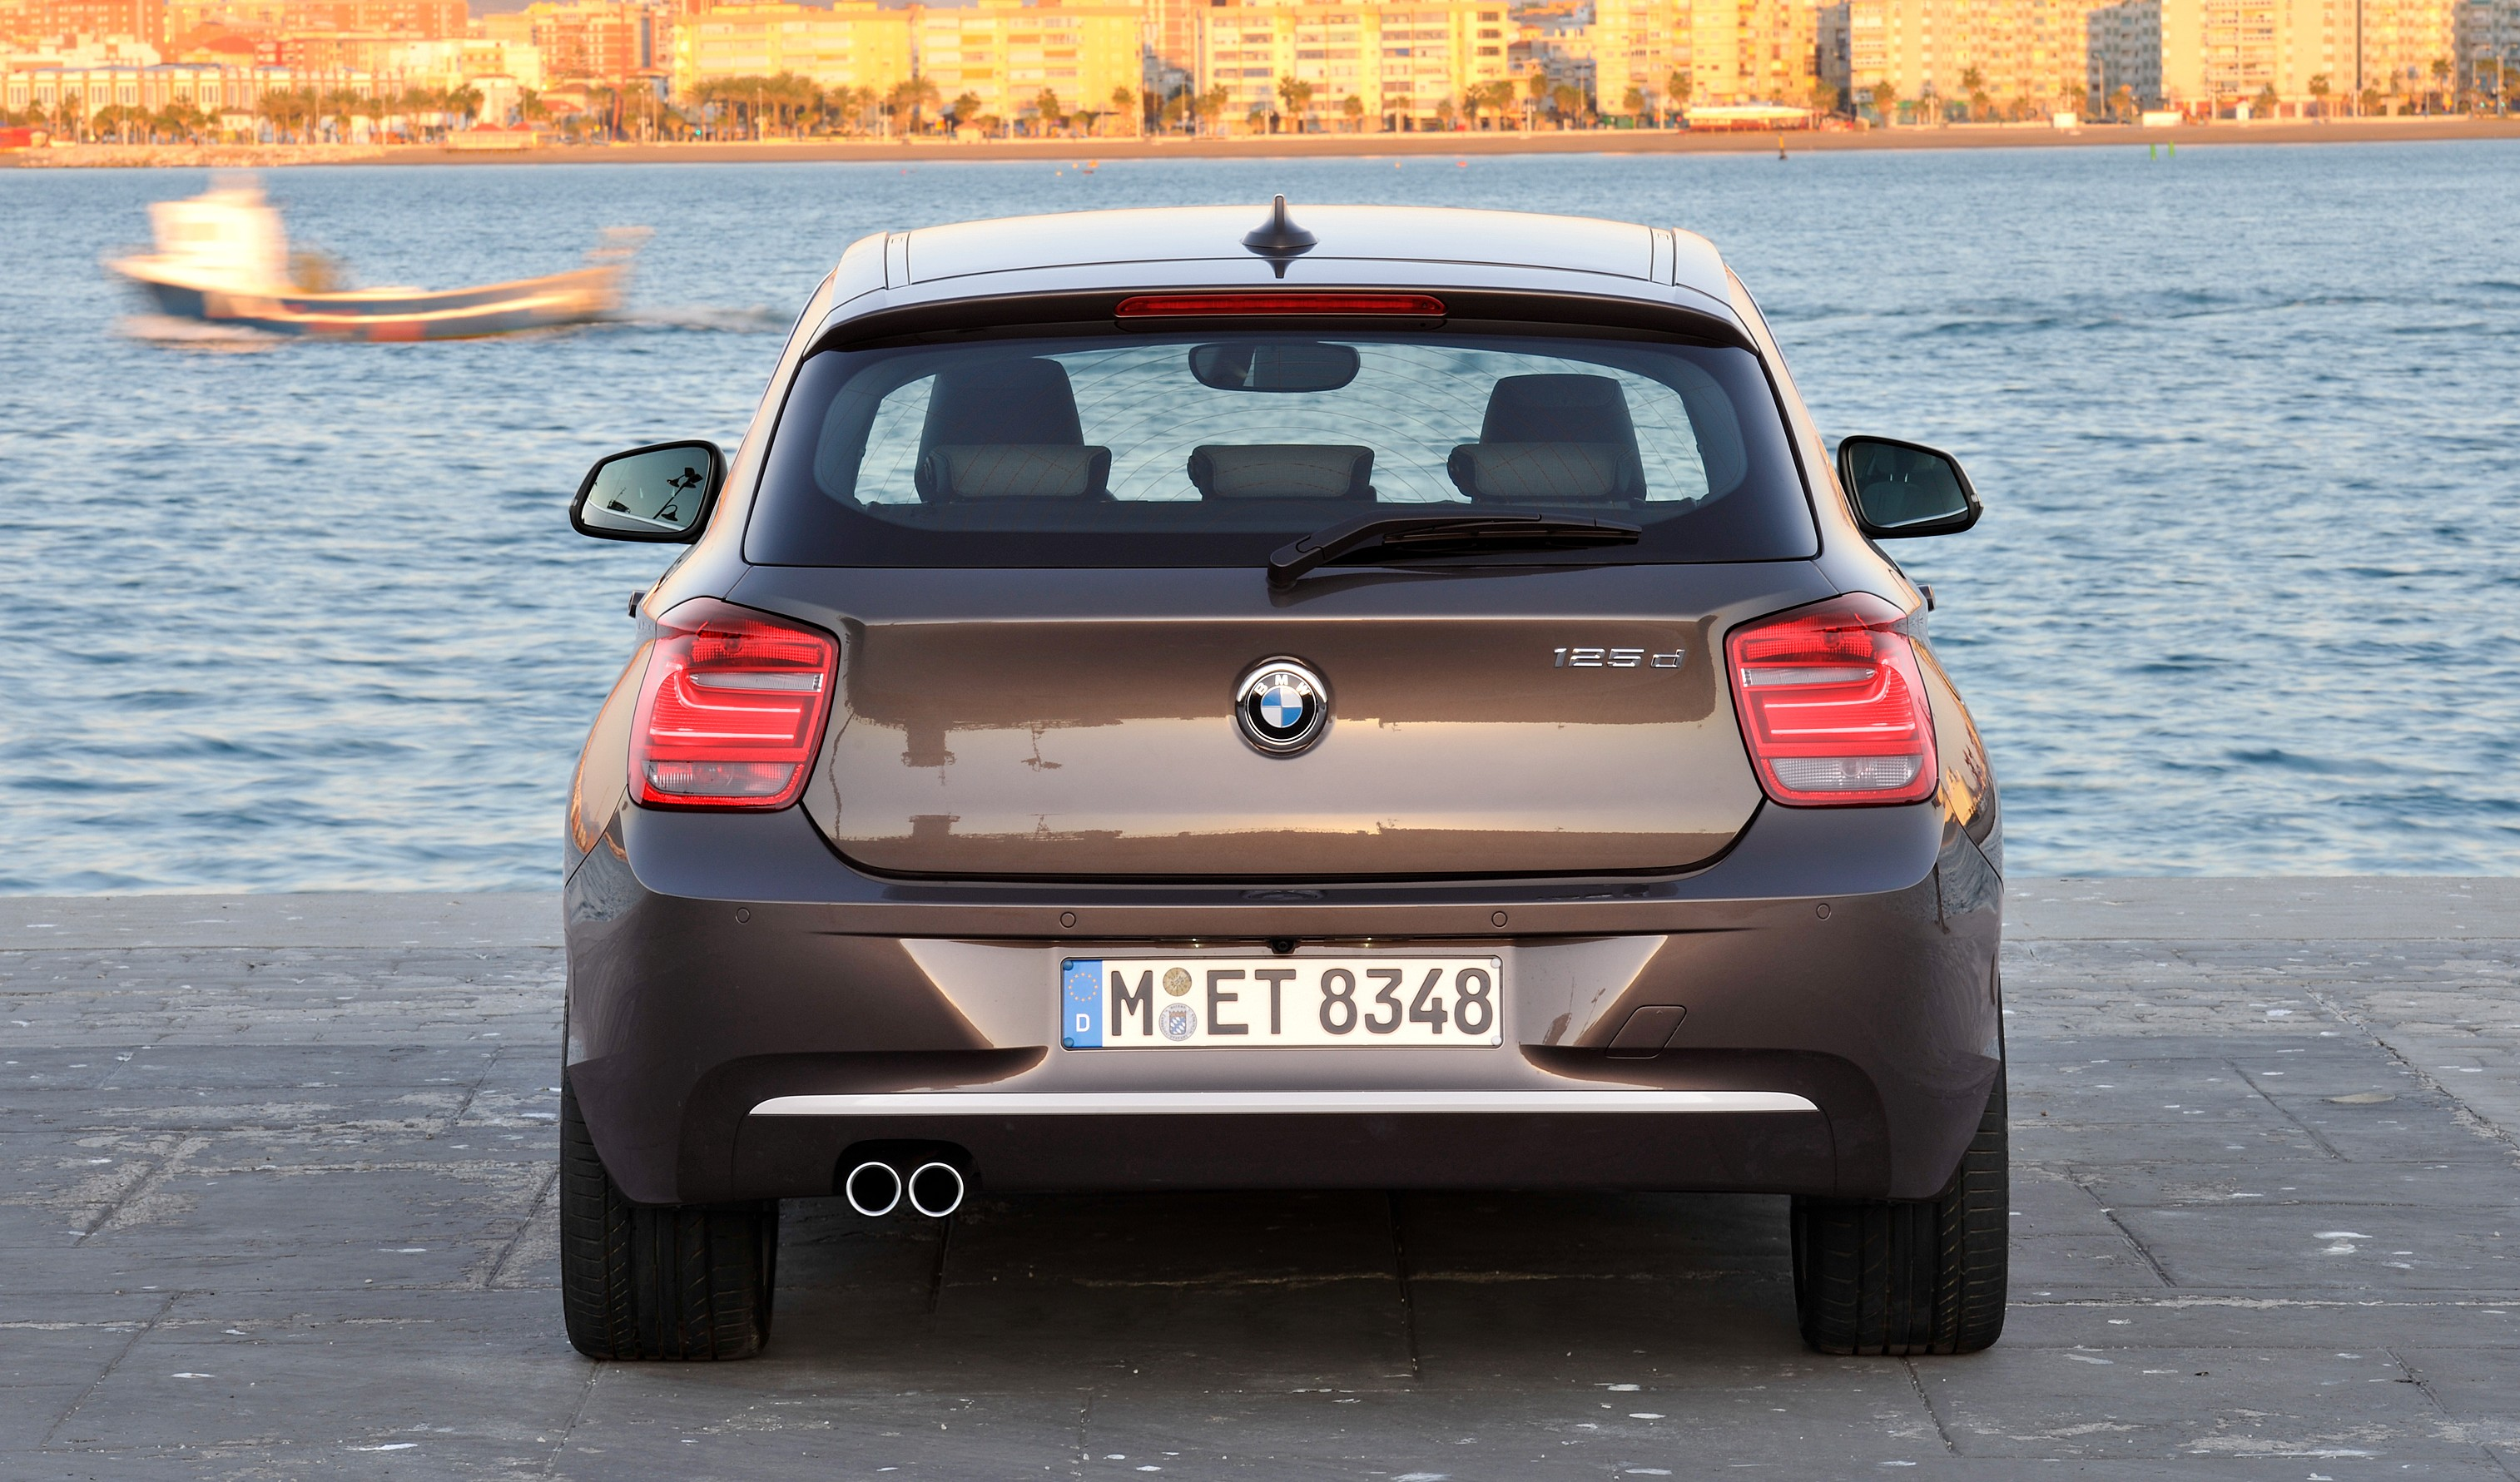 bmw 114i debuts with 3 door bmw 1 series hatch body image 106080. Black Bedroom Furniture Sets. Home Design Ideas